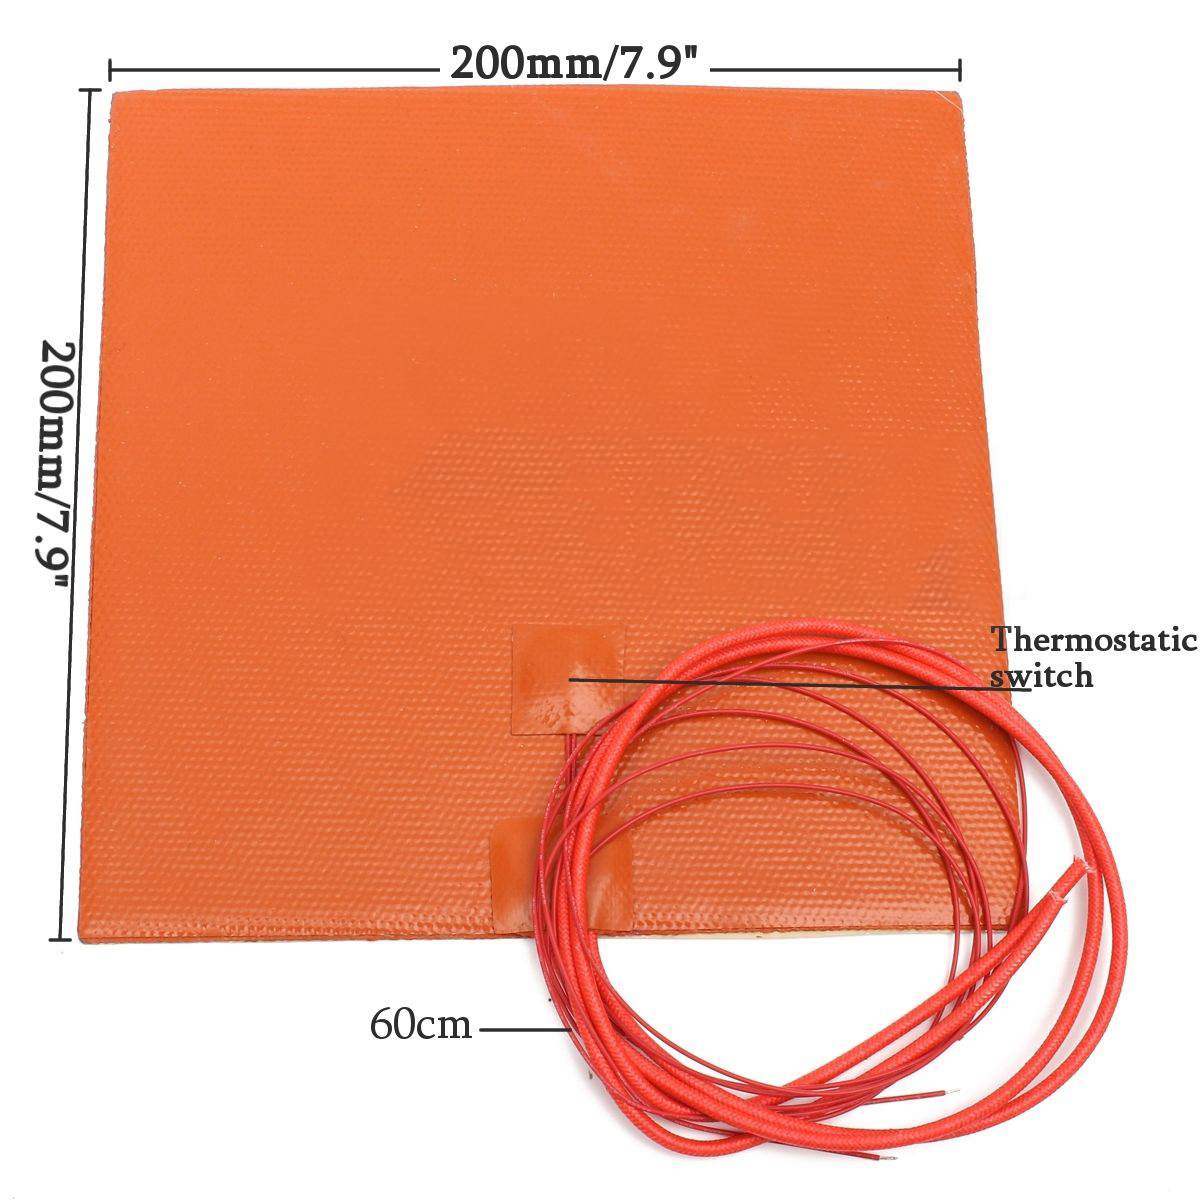 Fast Heating 200W 12V Silicone Heater Pad For 3D Printer Duplicating Machines Heated Bed Orange Heating Mat Repair Tools Mayitr um 2 go 3d printer parts upgrade silicone rubber heater mat heated bed pt100 sensor for ultimaker 2 go build platform